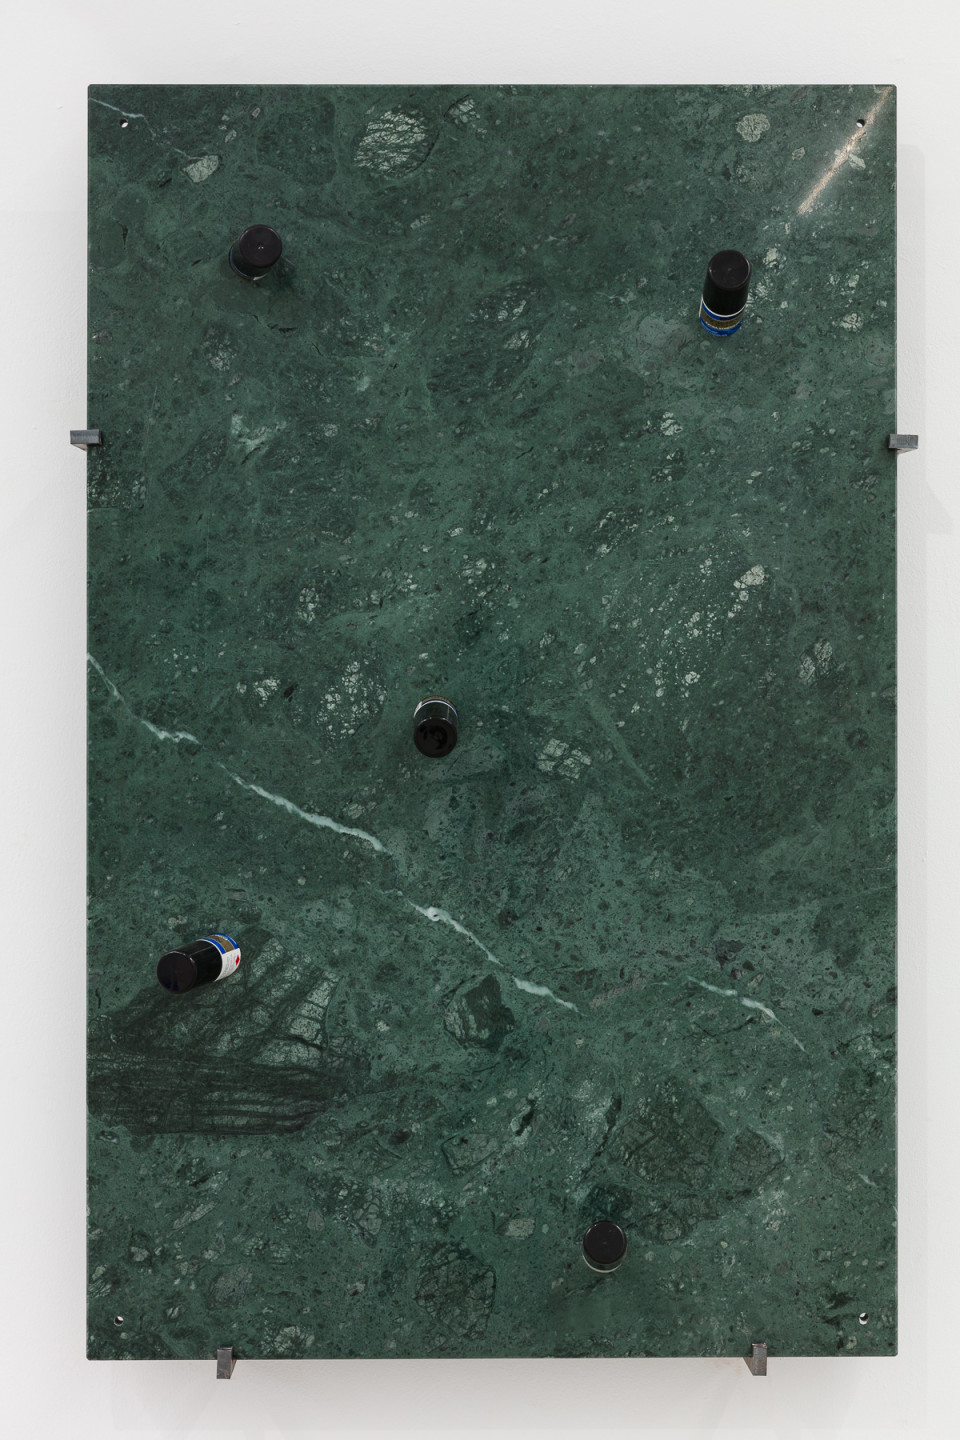 George Henry Longly kcals, 2012 green Serpentine marble, Regaine, metal fixings 700 x 1100 x 200 cm 275 5/8 x 433 1/8 x 78 3/4 in